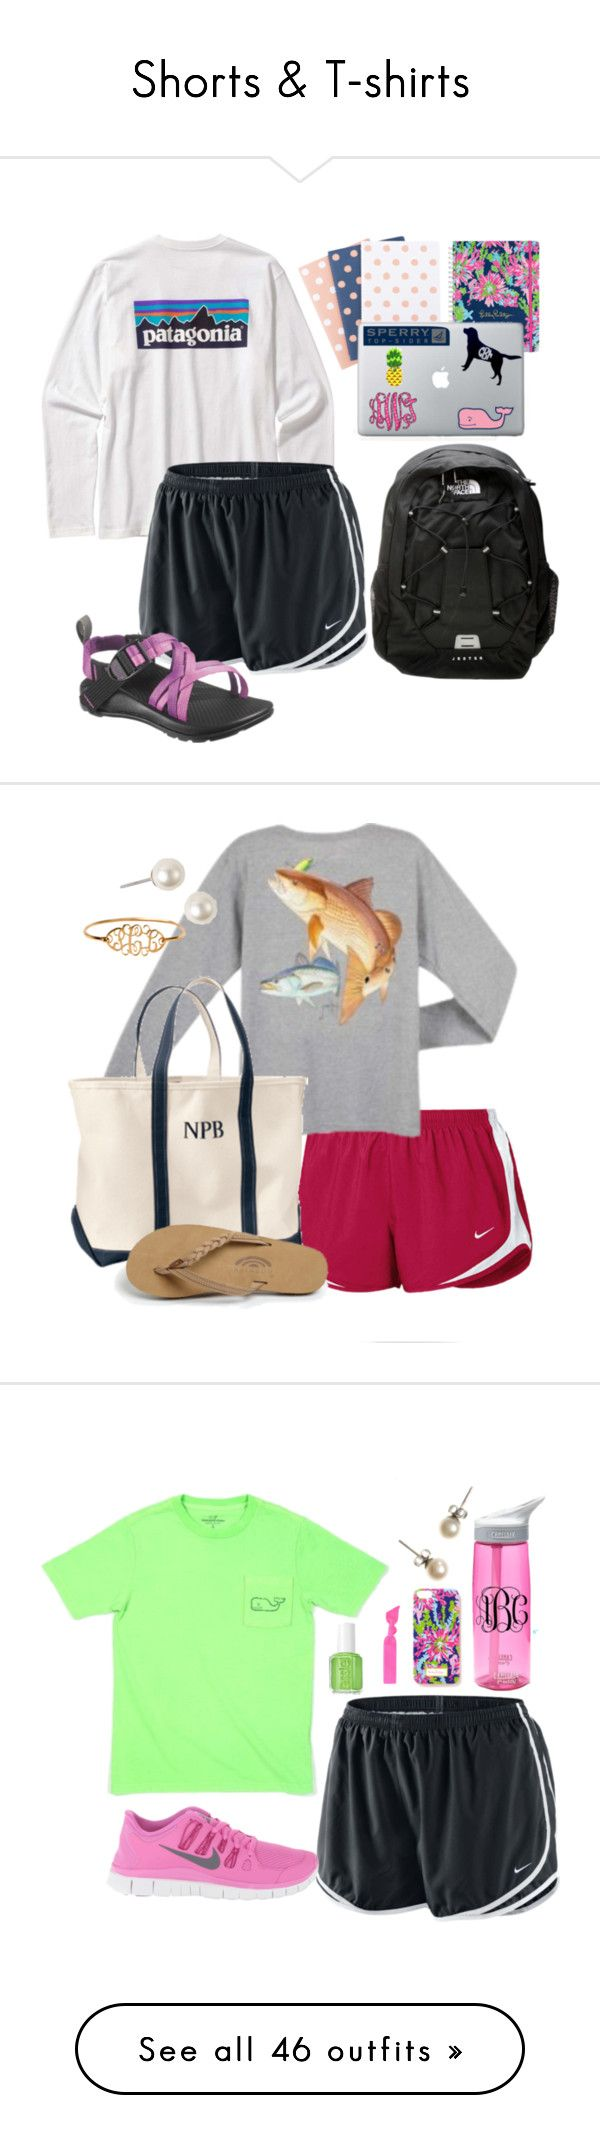 nike shoes Shorts T-shirts by sassy-prep ❤ liked on Polyvore featuring moda, Patagonia, NIKE, The North Face, Lilly Pulitzer, Vineyard Vines, Sperry Top-Sider, L.L.Bean, Rainbow y Givenchy